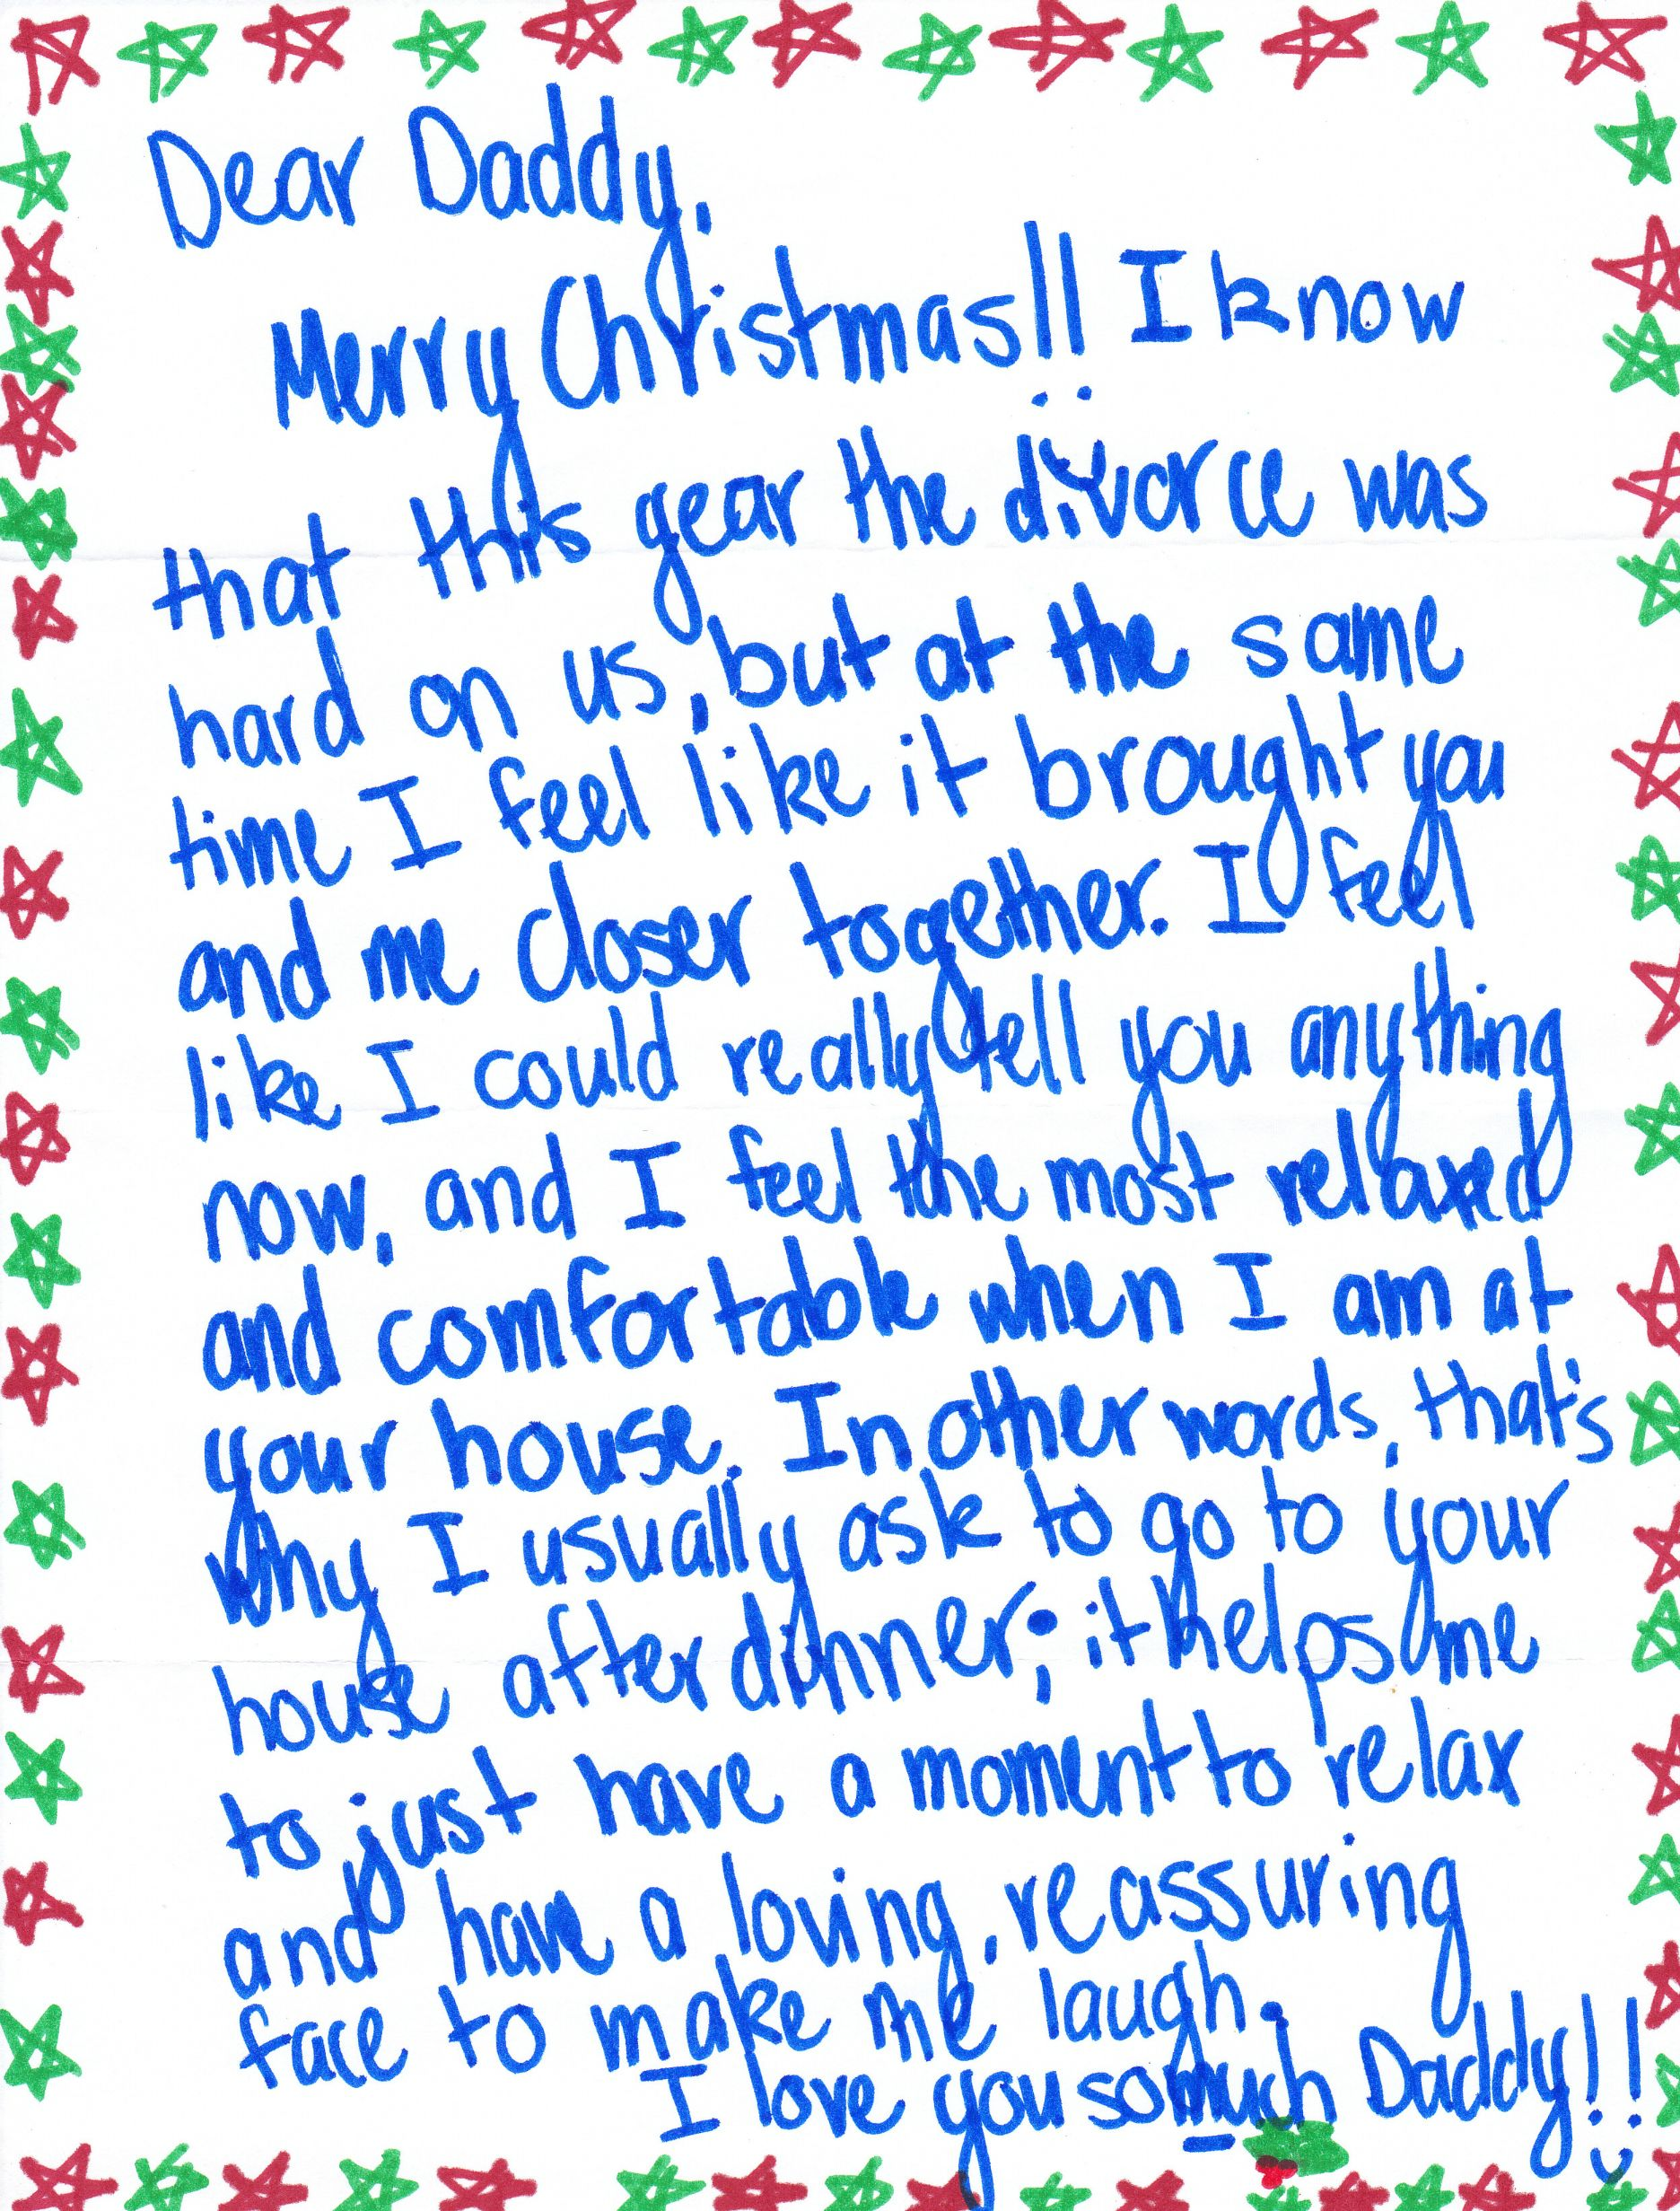 This Christmas Letter From A Daughter To Her Dad Proves The Best ...